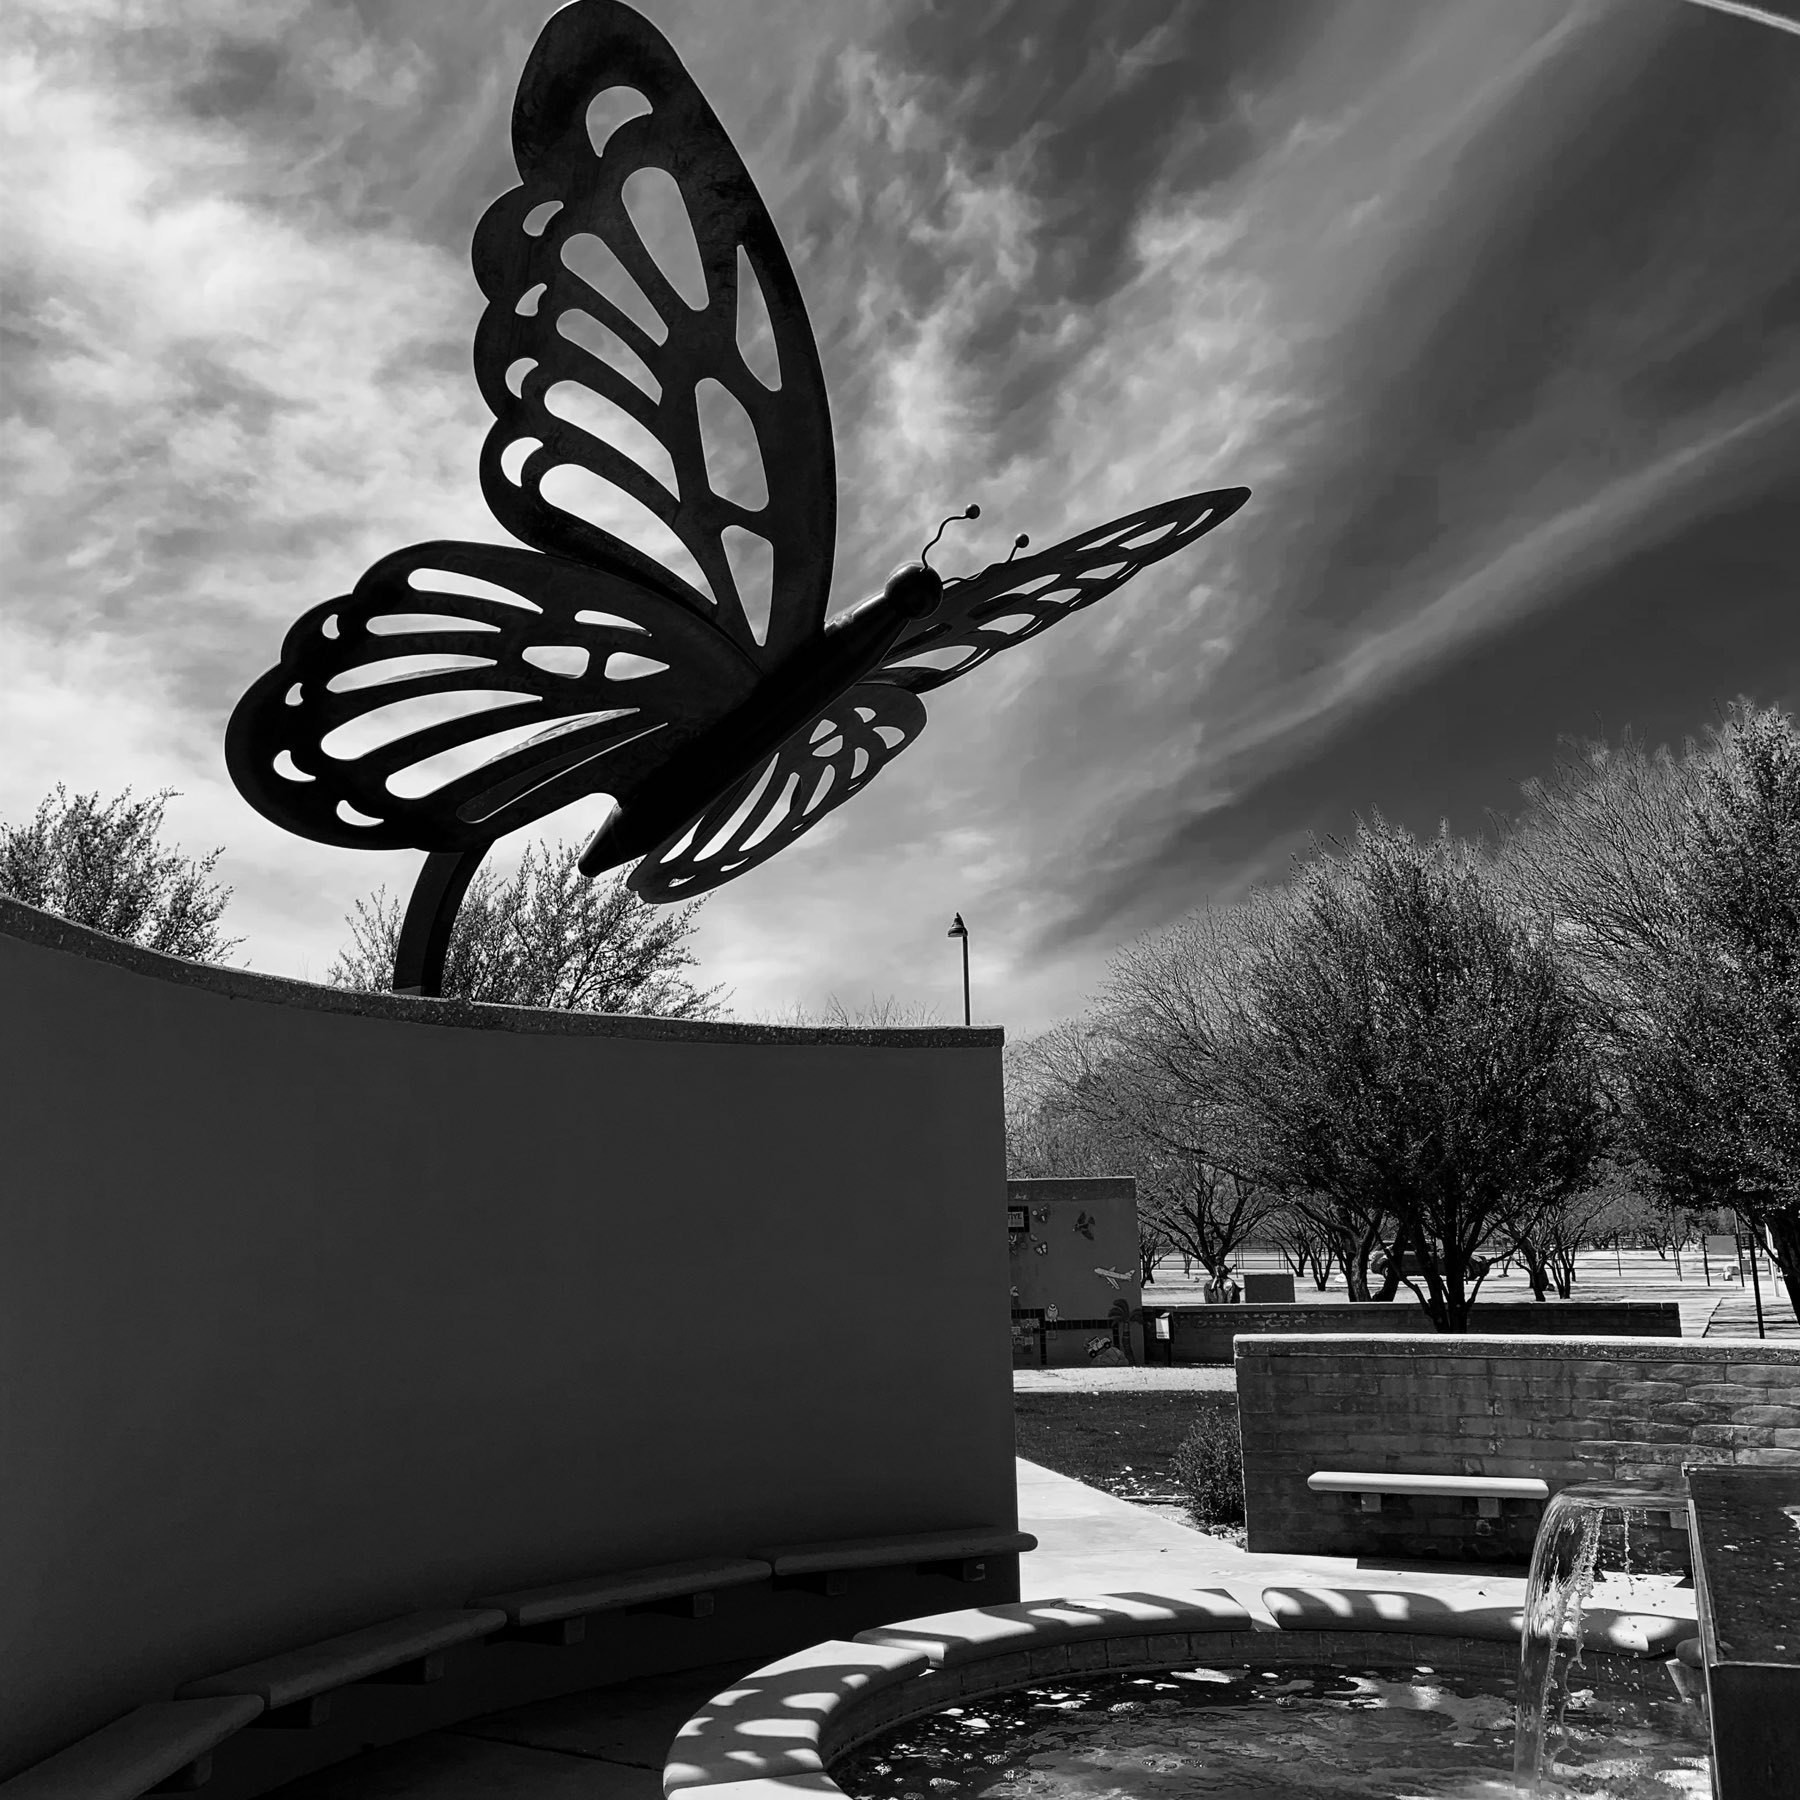 Giant butterfly public art sculpture at Brandi Fenton Memorial Park